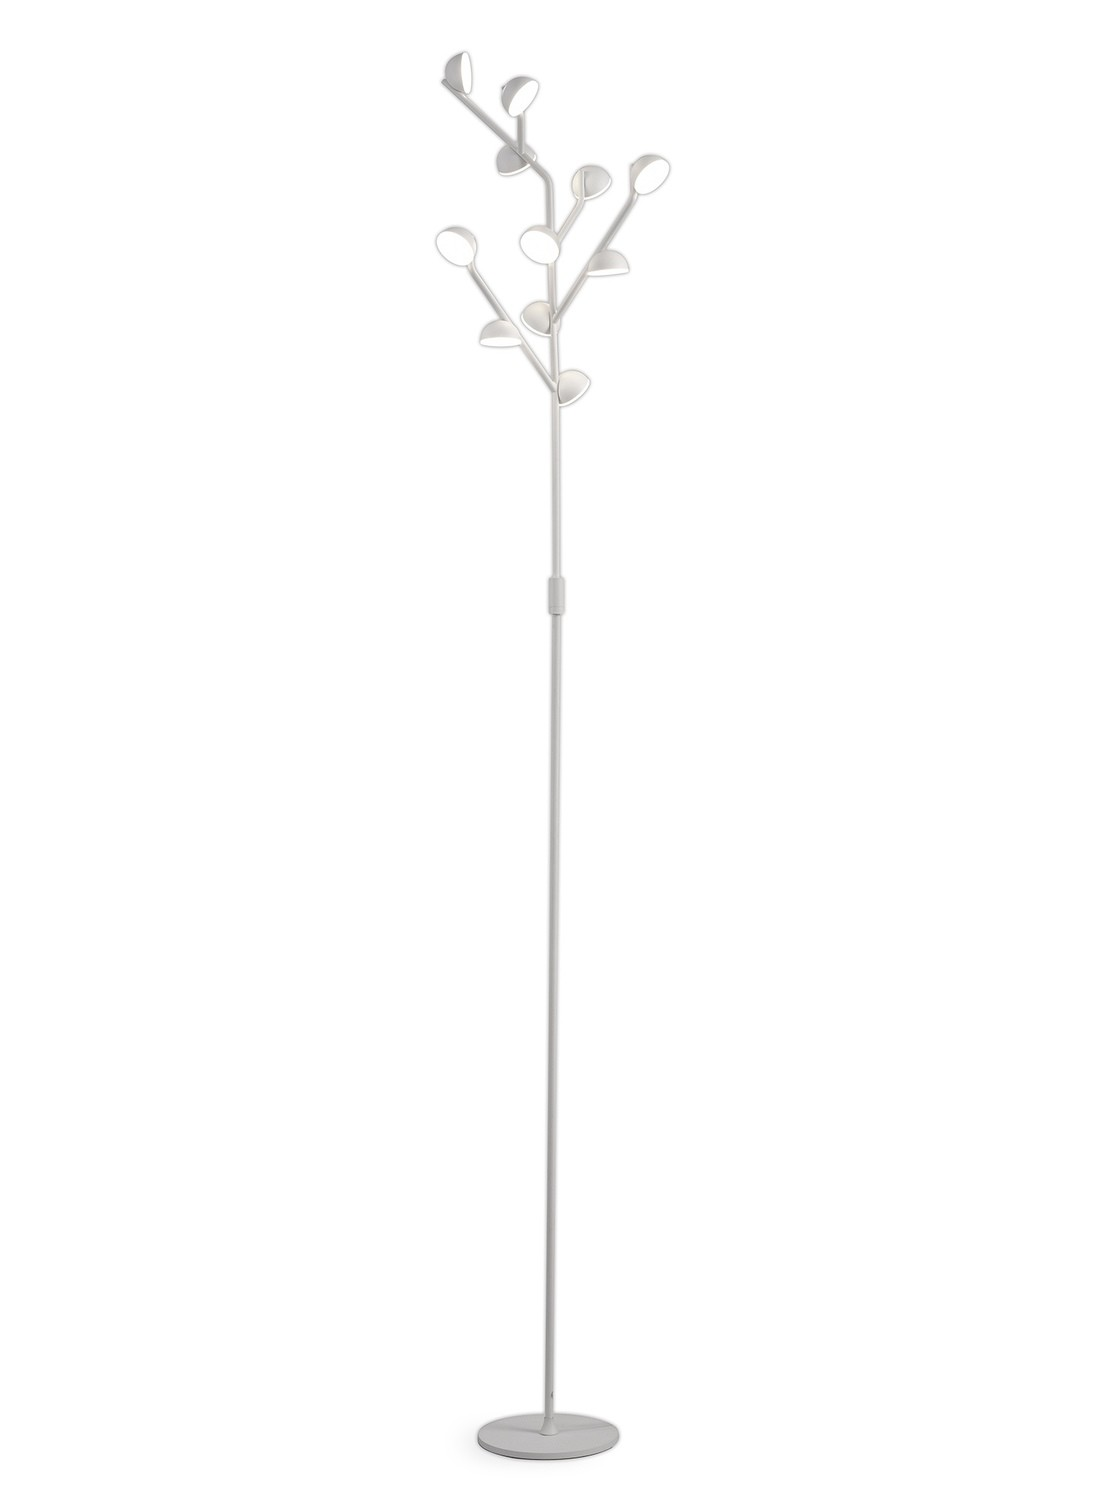 Adn 10 Light Floor Lamp 158cm, 30W LED, 3000K, 1650lm, White, 3yrs Warranty